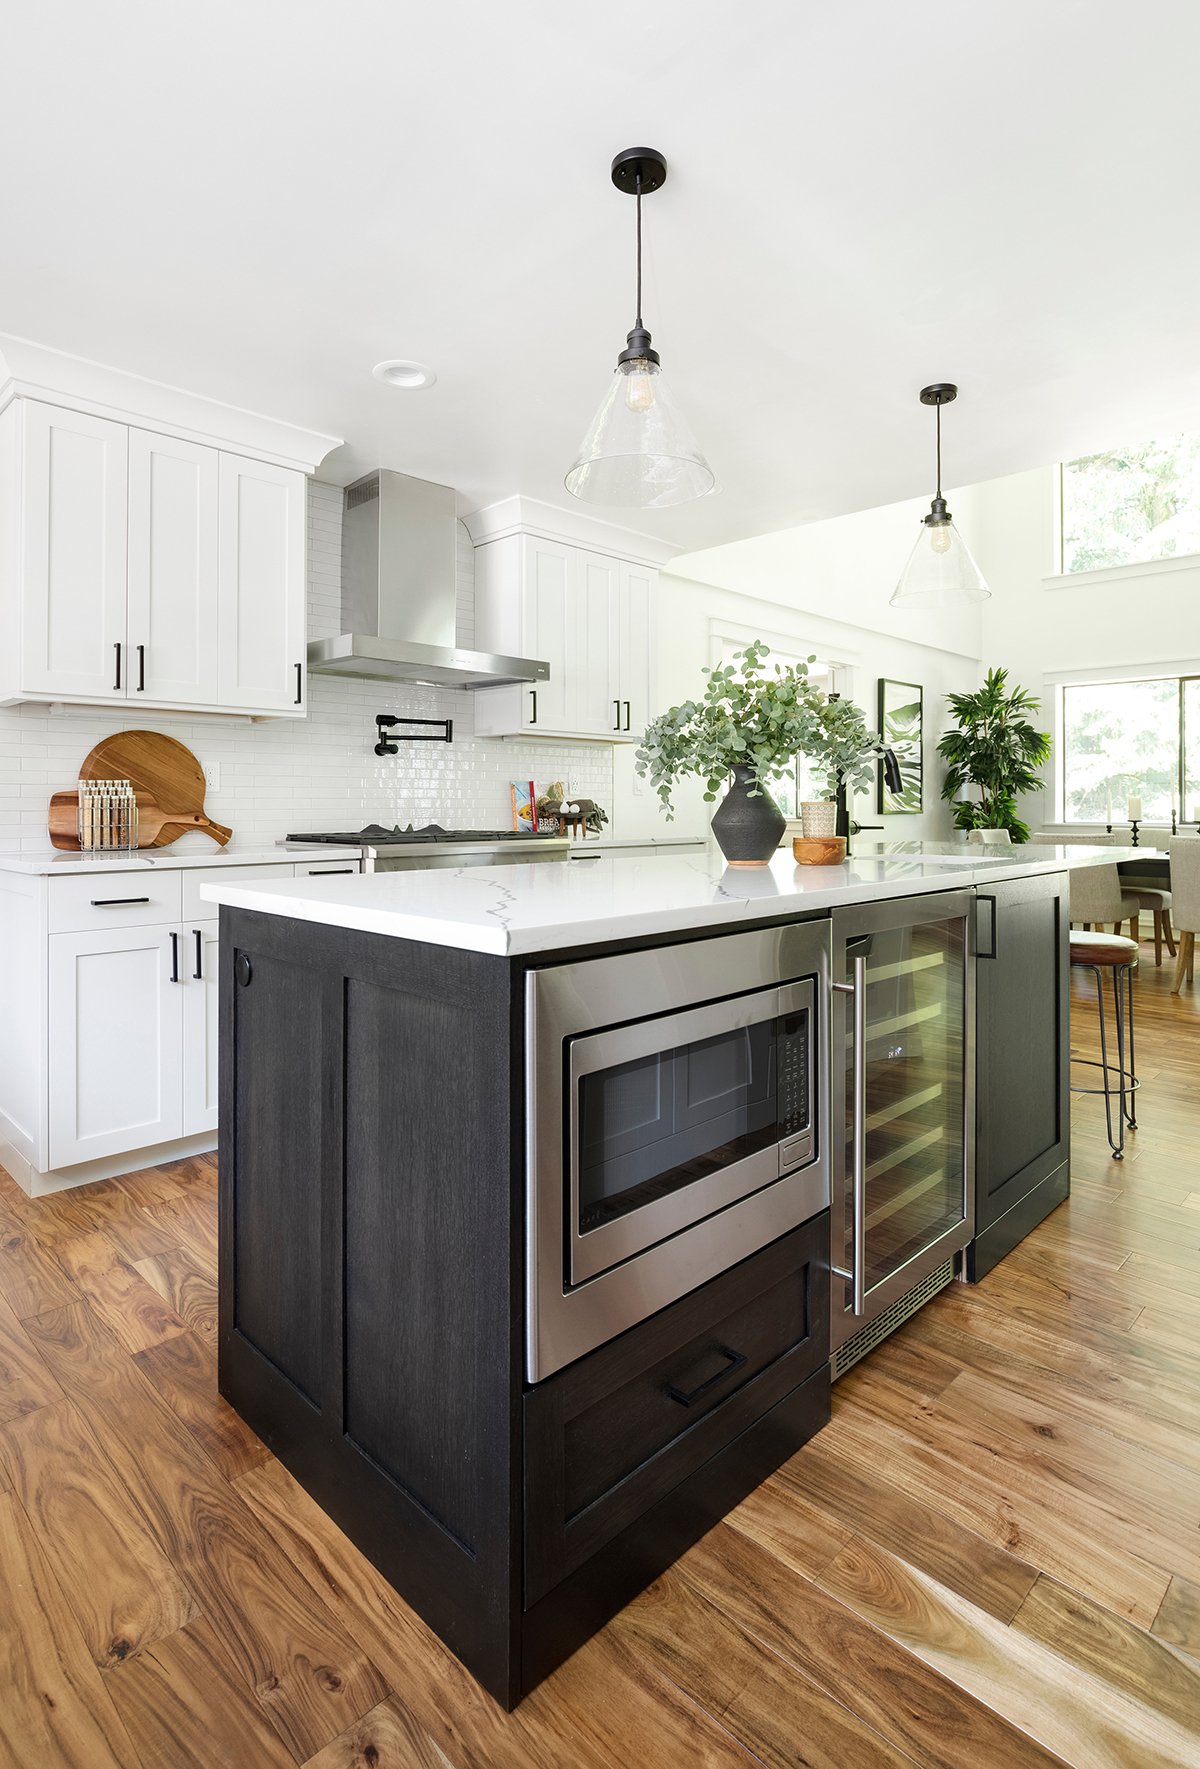 Featuring Zephyr Roma Wall Range Hood and Zephyr Presrv™ Dual Zone Wine Cooler